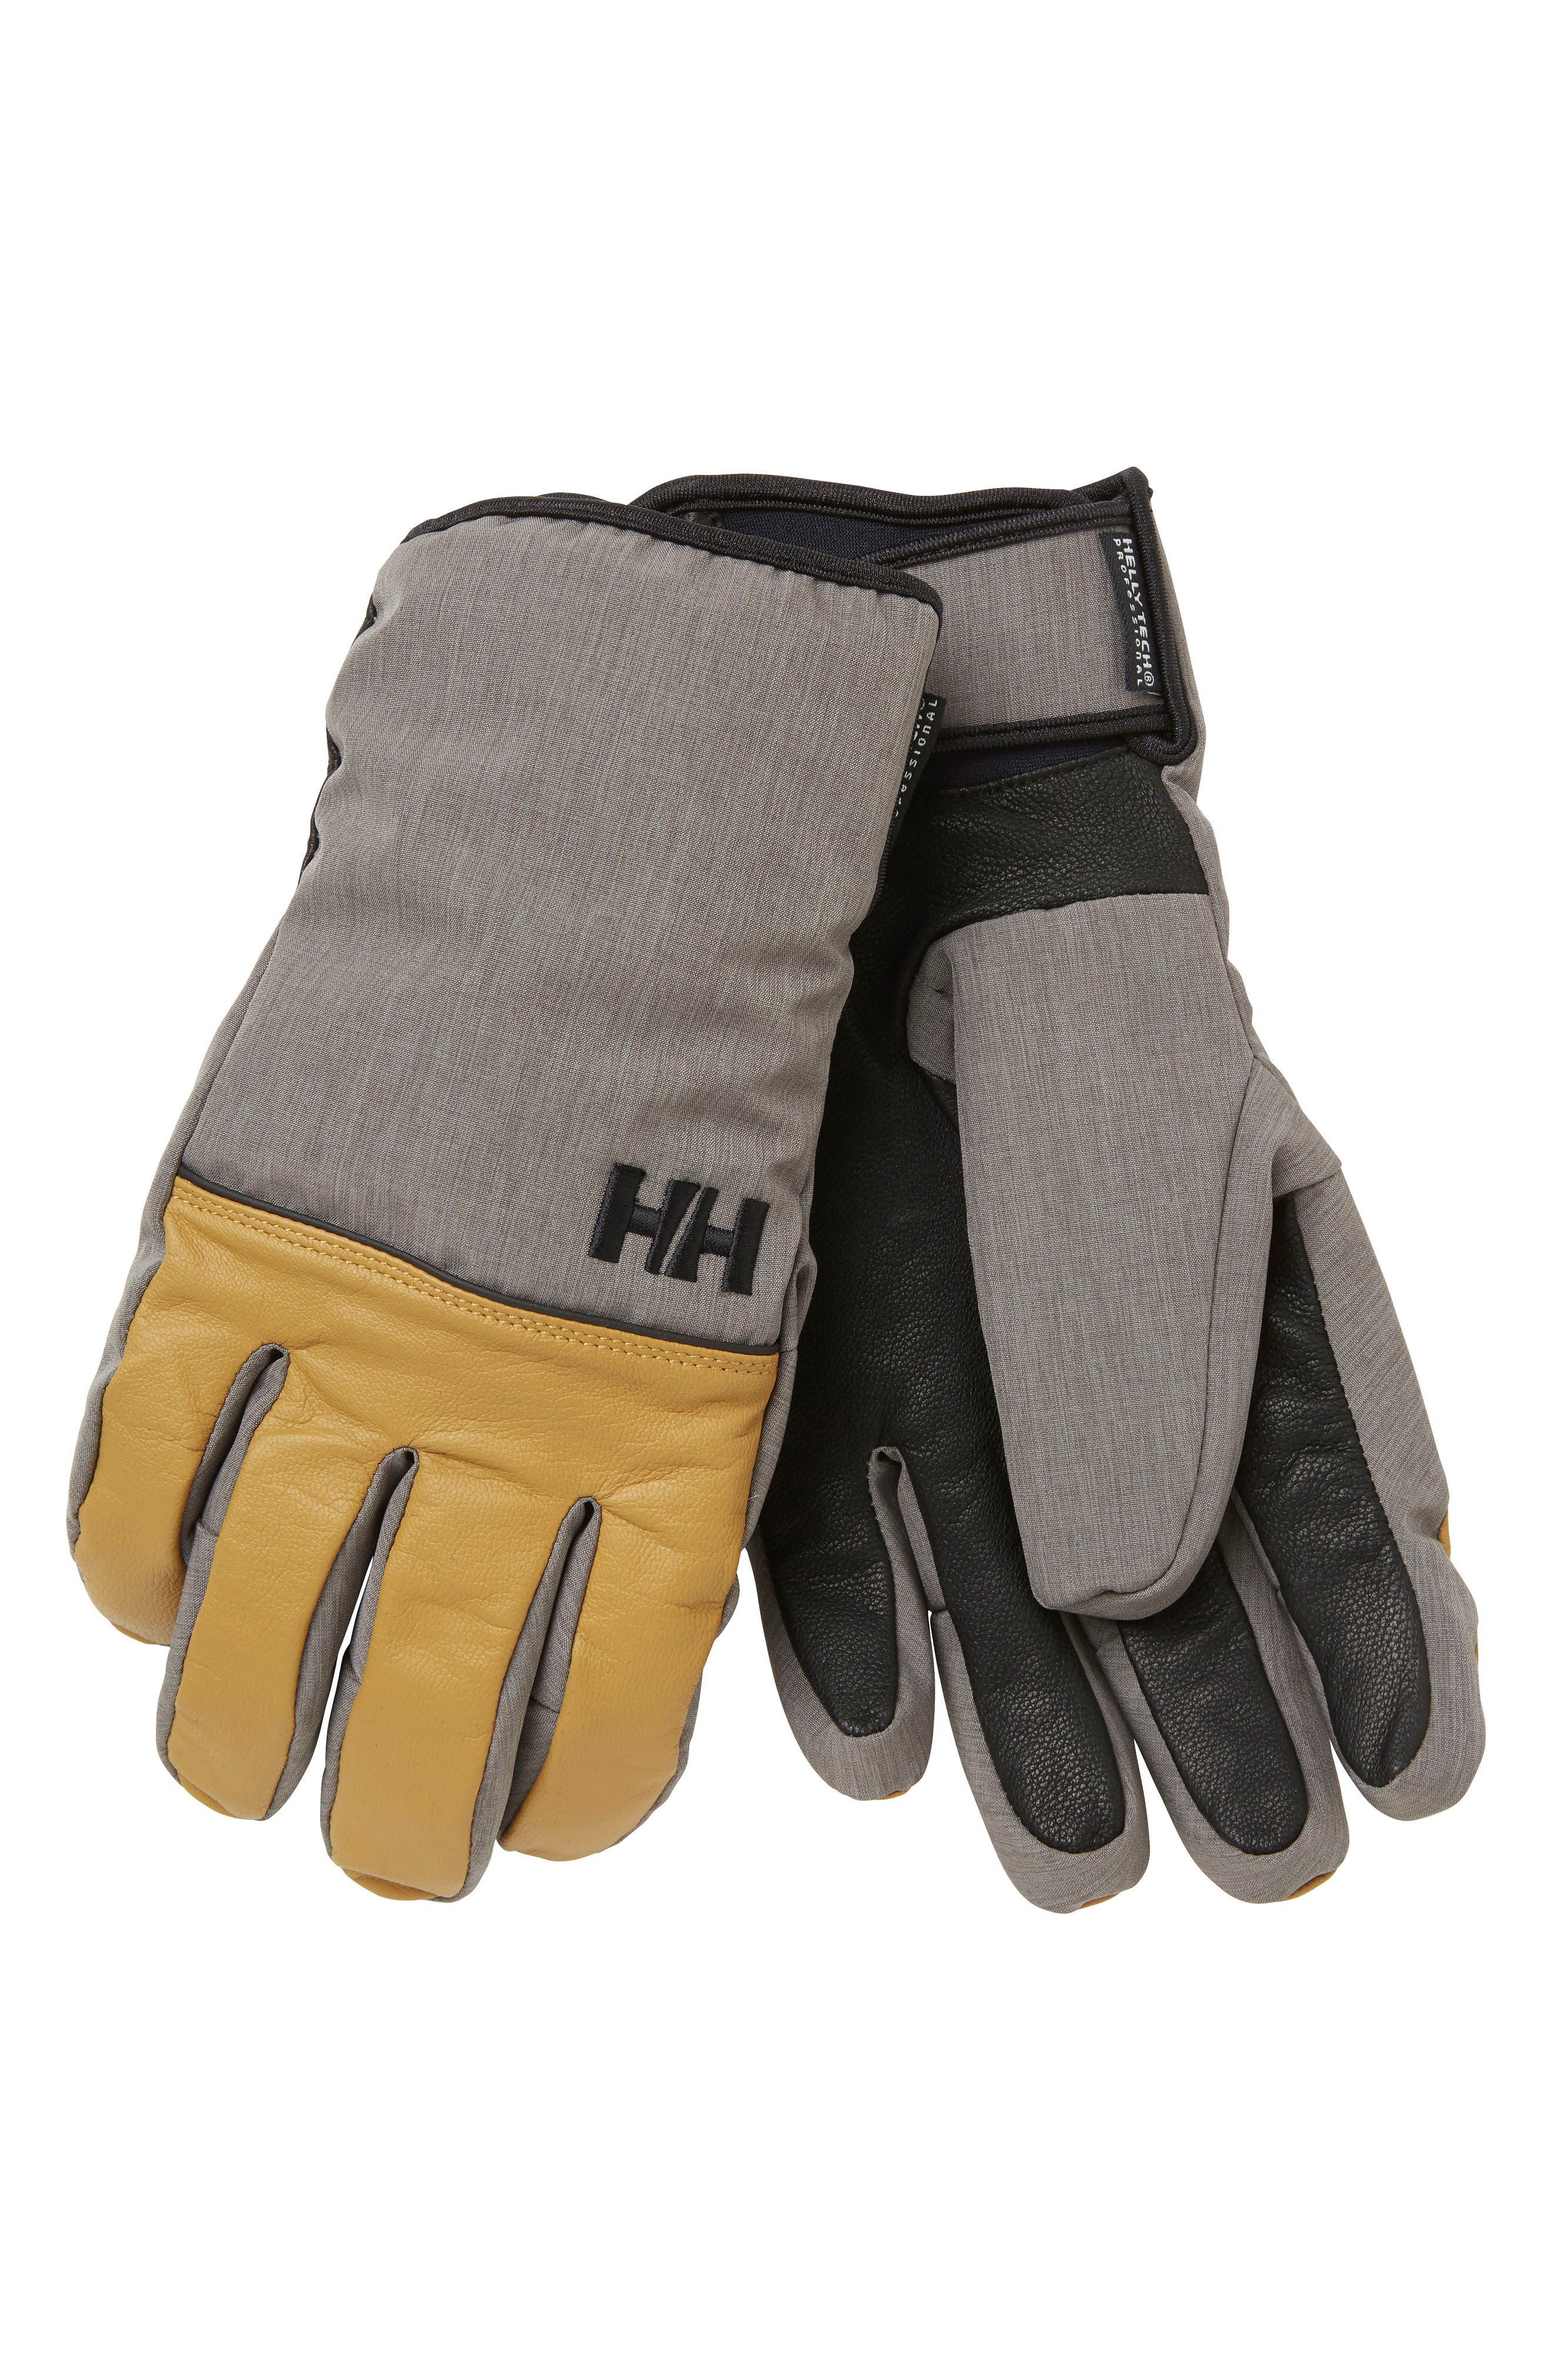 Alternate Image 1 Selected - Helly Hansen Rogue HT Gloves